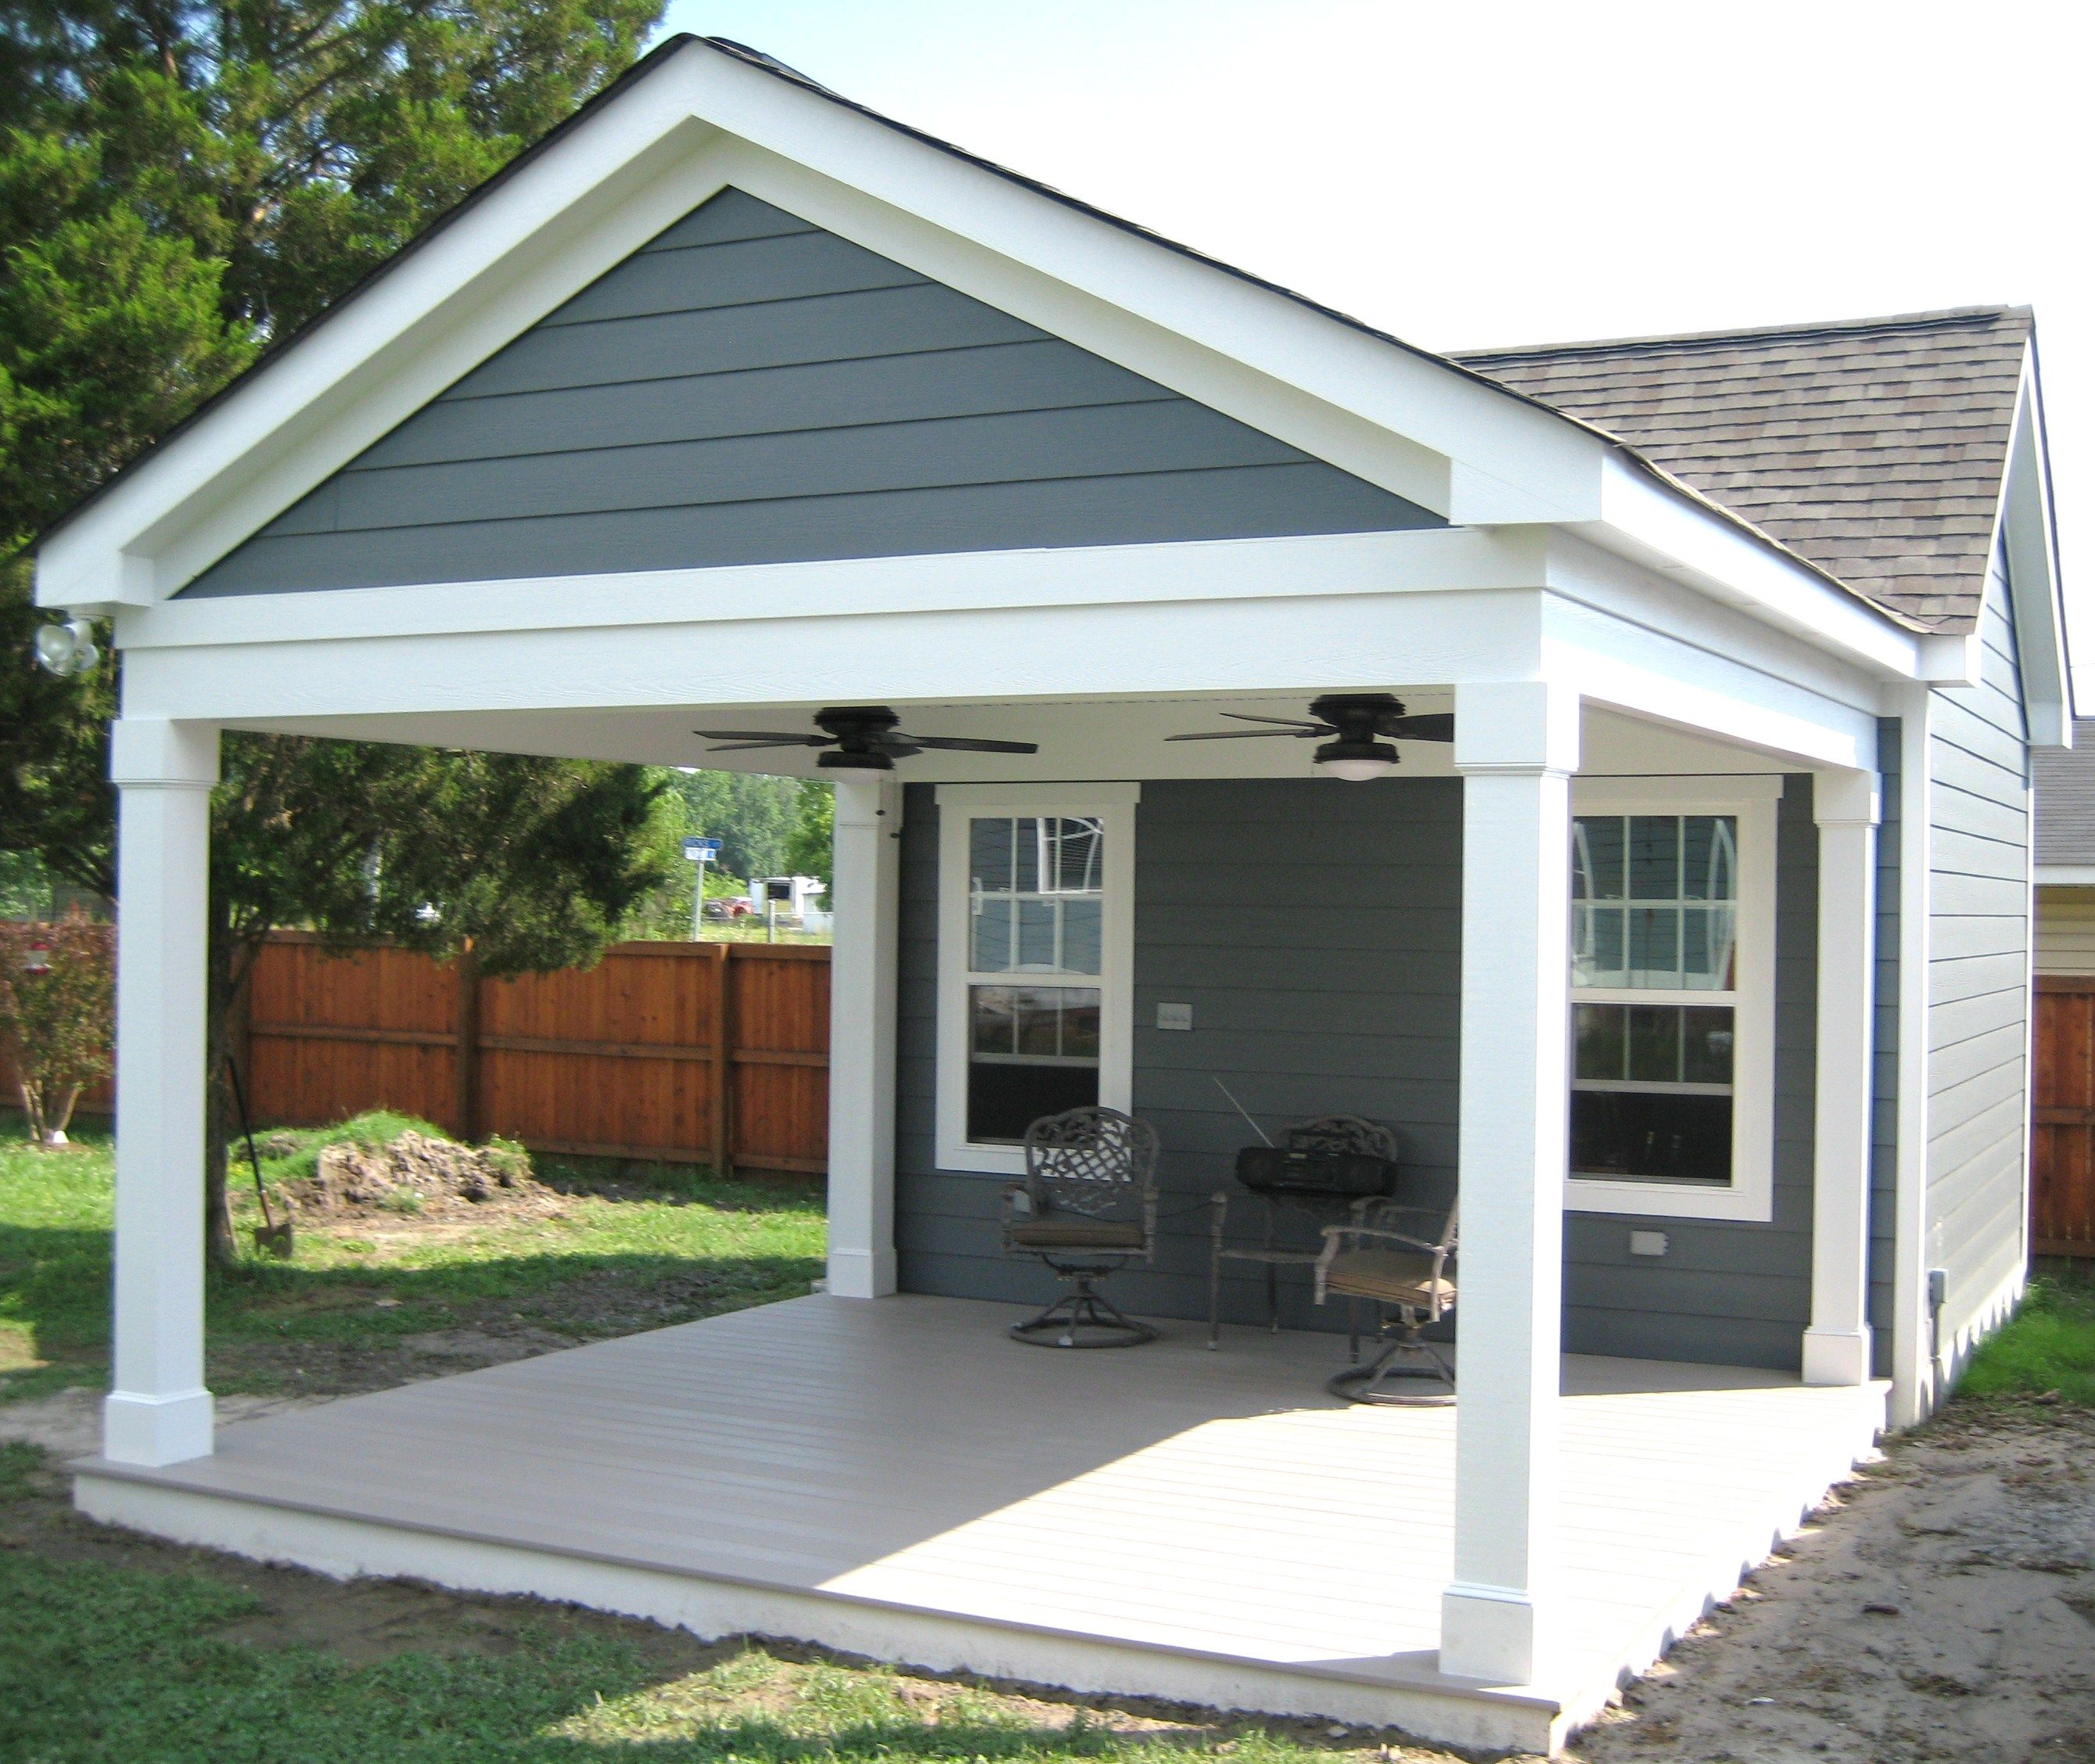 Garage with porch outbuilding with covered porch Shed with screened porch